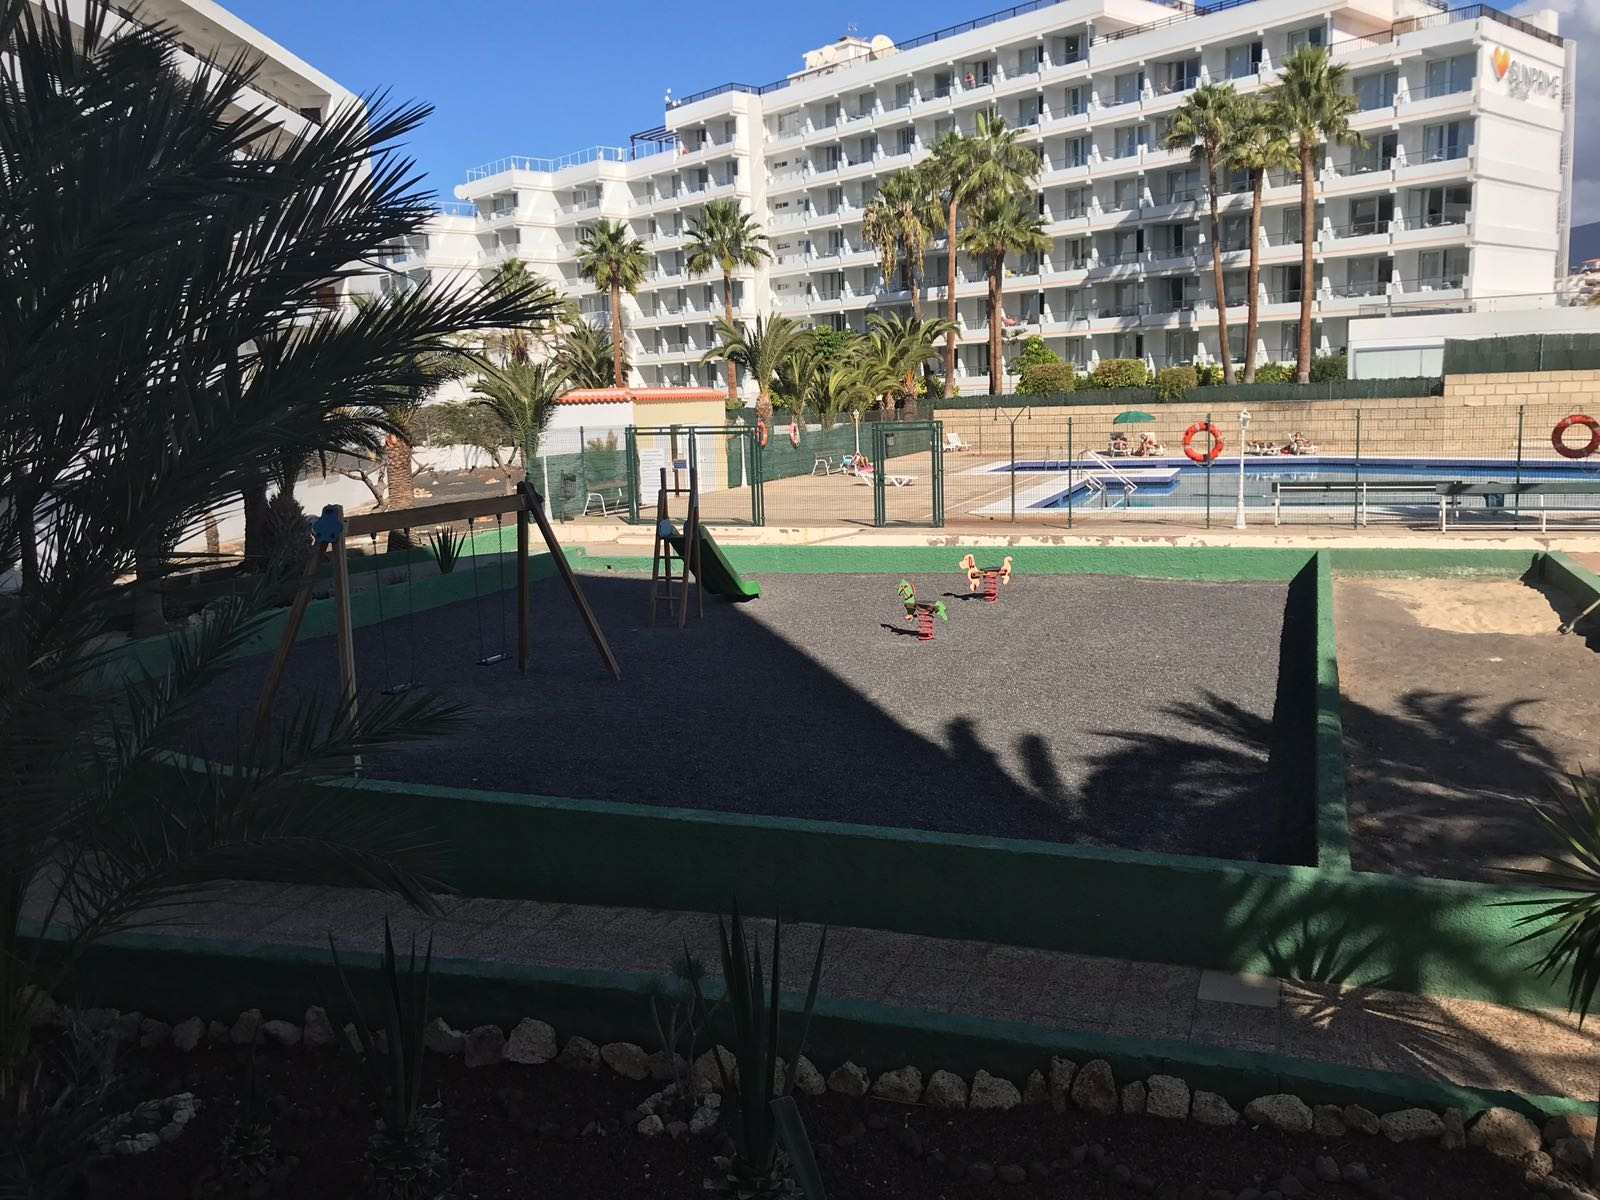 Properties for Sale in Tenerife, Canary Islands, Spain | SylkWayStar Real Estate. 1 Bedroom apartment Los Agaves. Image-22292